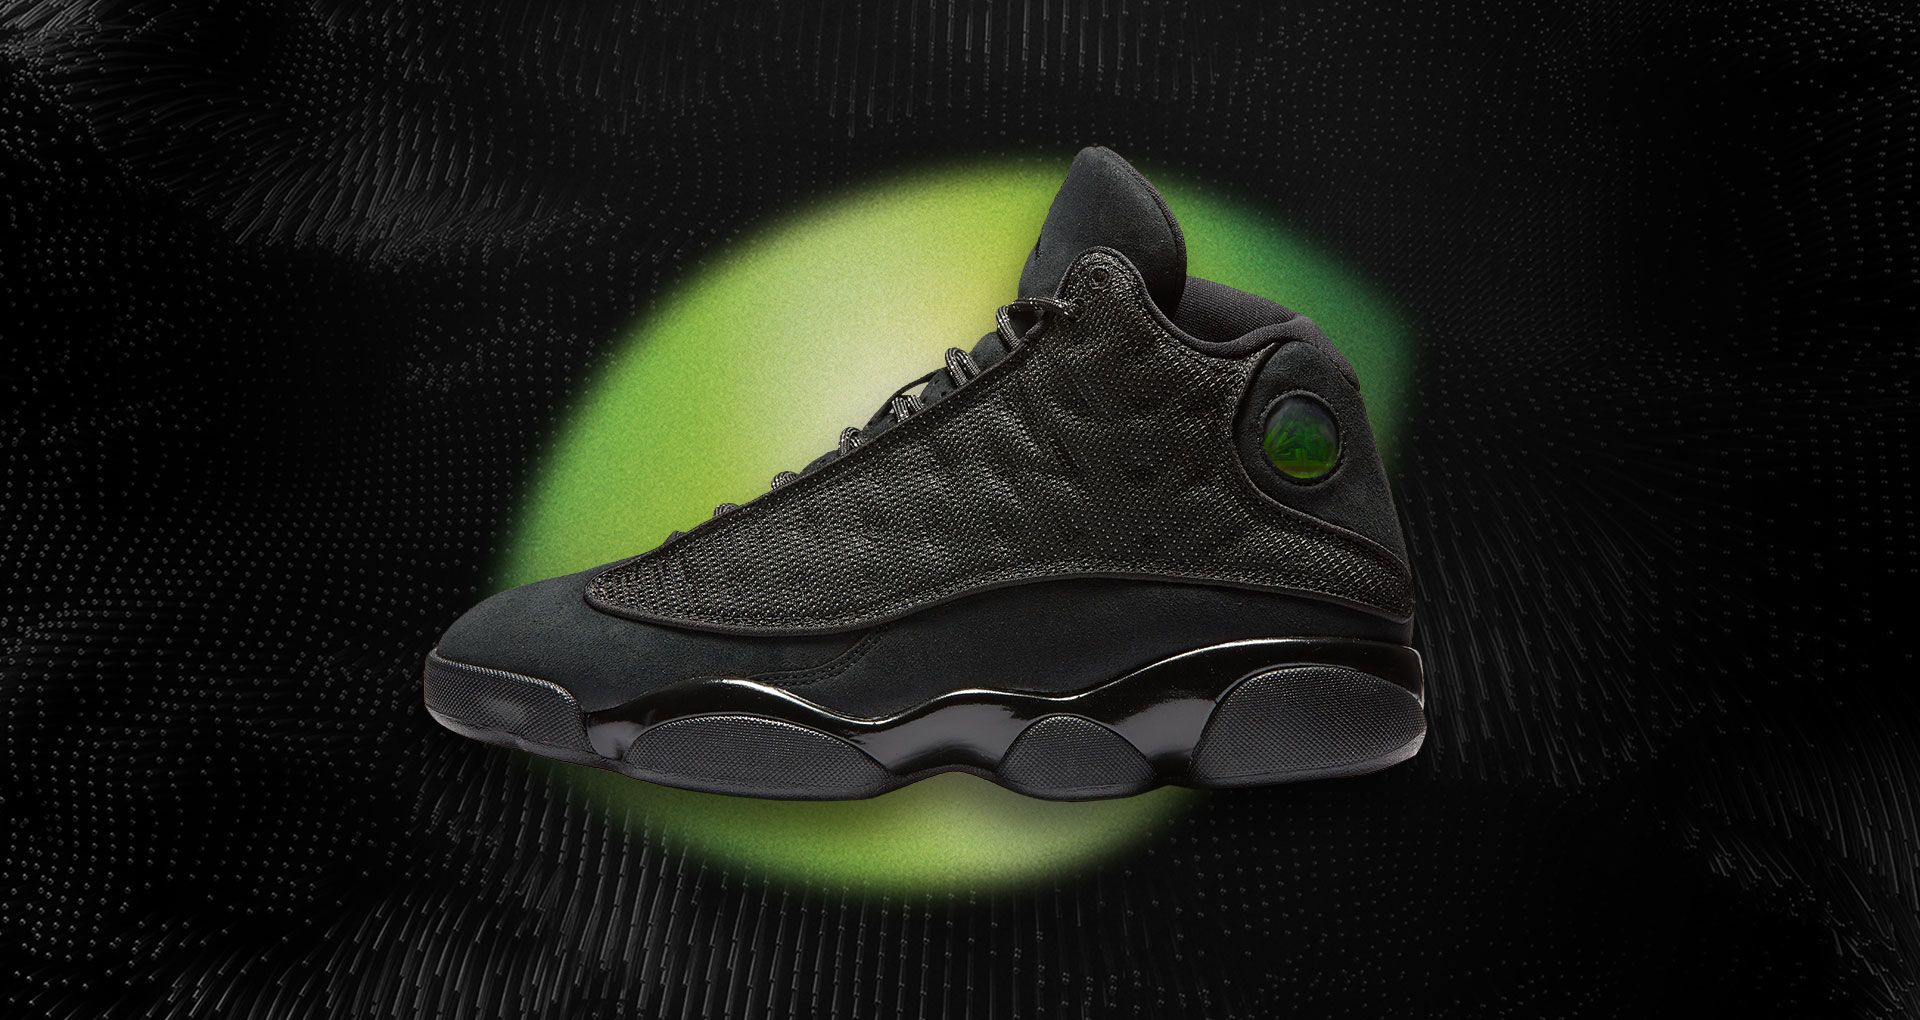 a6de81da6ad6 Air Jordan 13 Retro  Black Cat . Nike⁠+ SNKRS